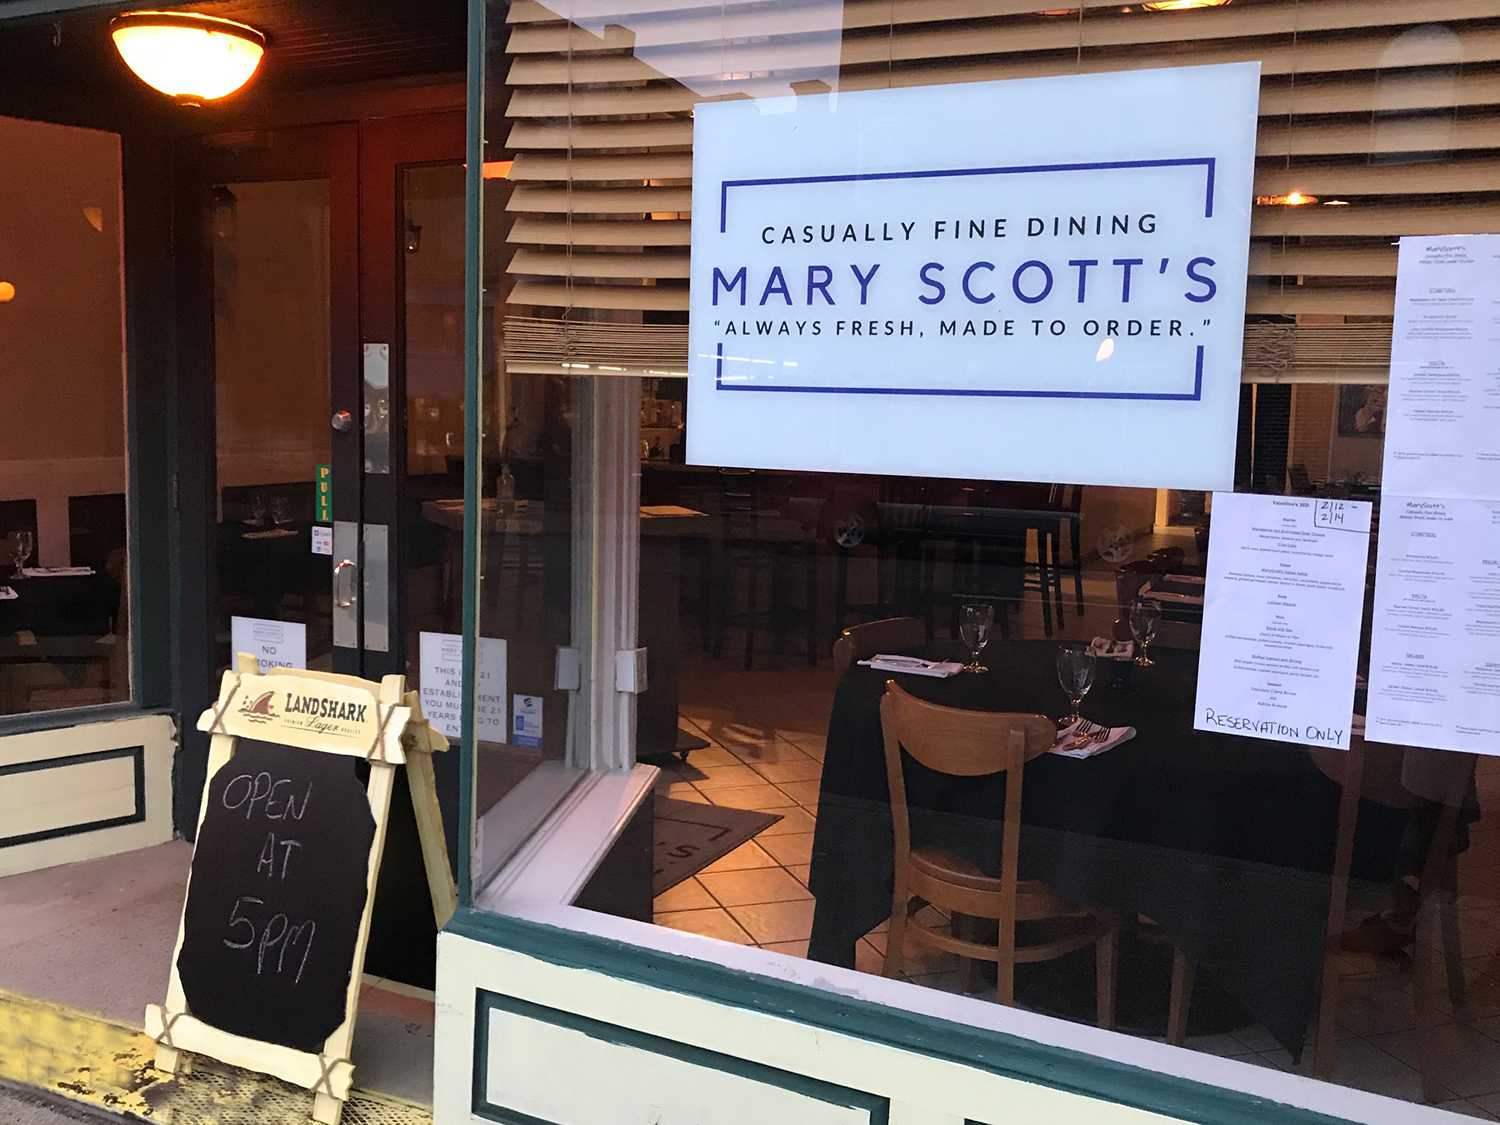 New Harmony Mary Scott's Casually Fine Dining